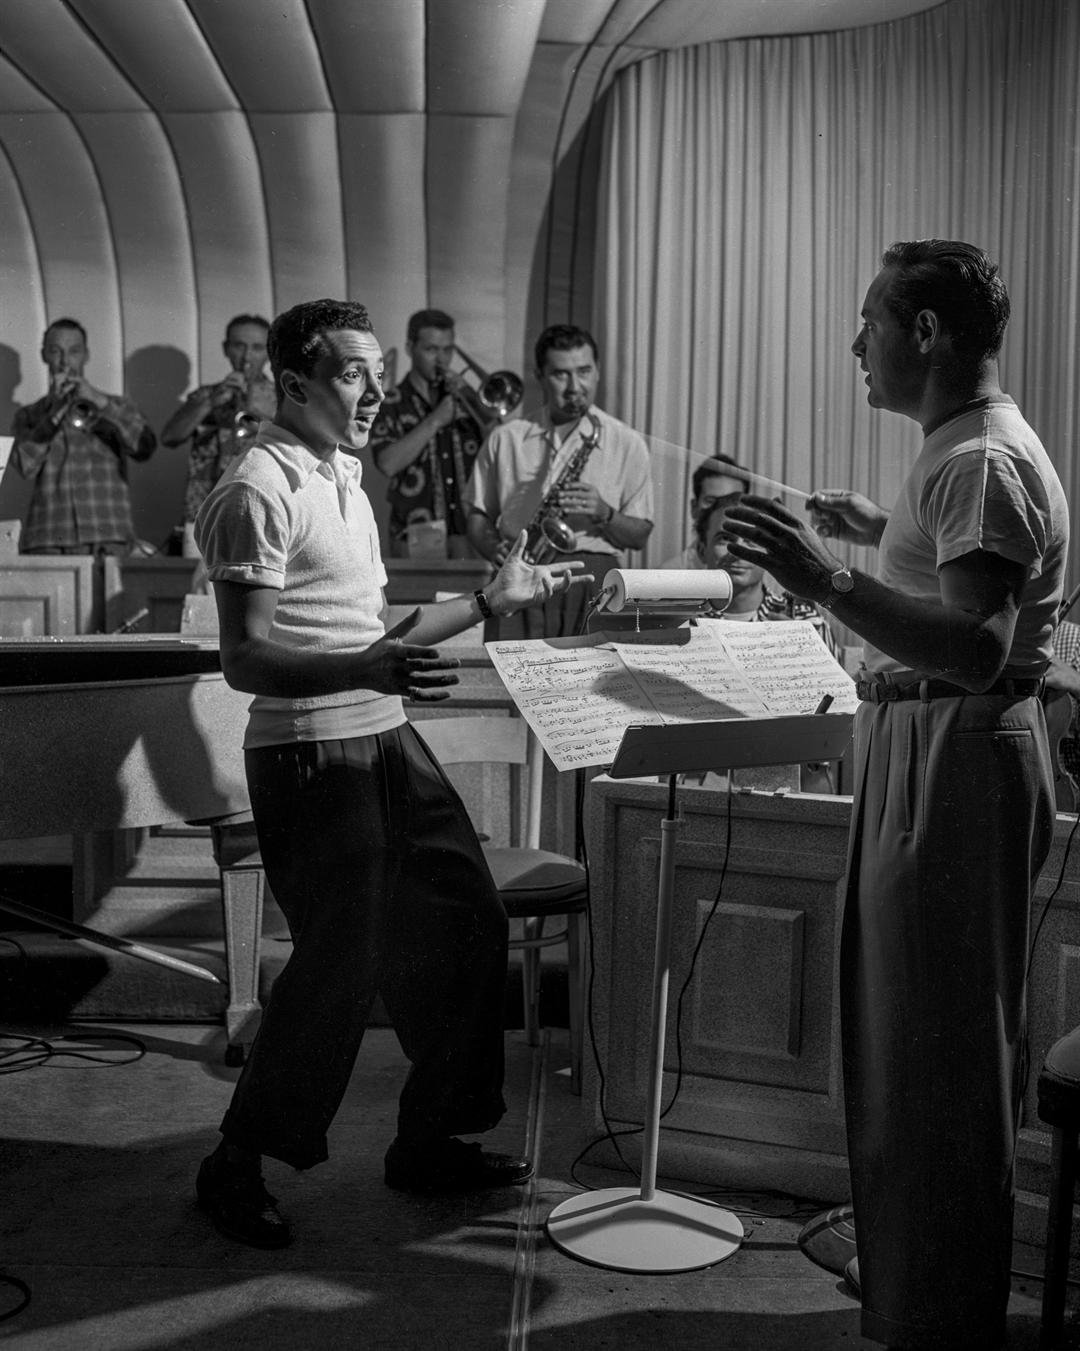 American singer and entertainer Vic Damone, left, rehearses at the Flamingo in Las Vegas on January 1, 1950. (Las Vegas News Bureau)